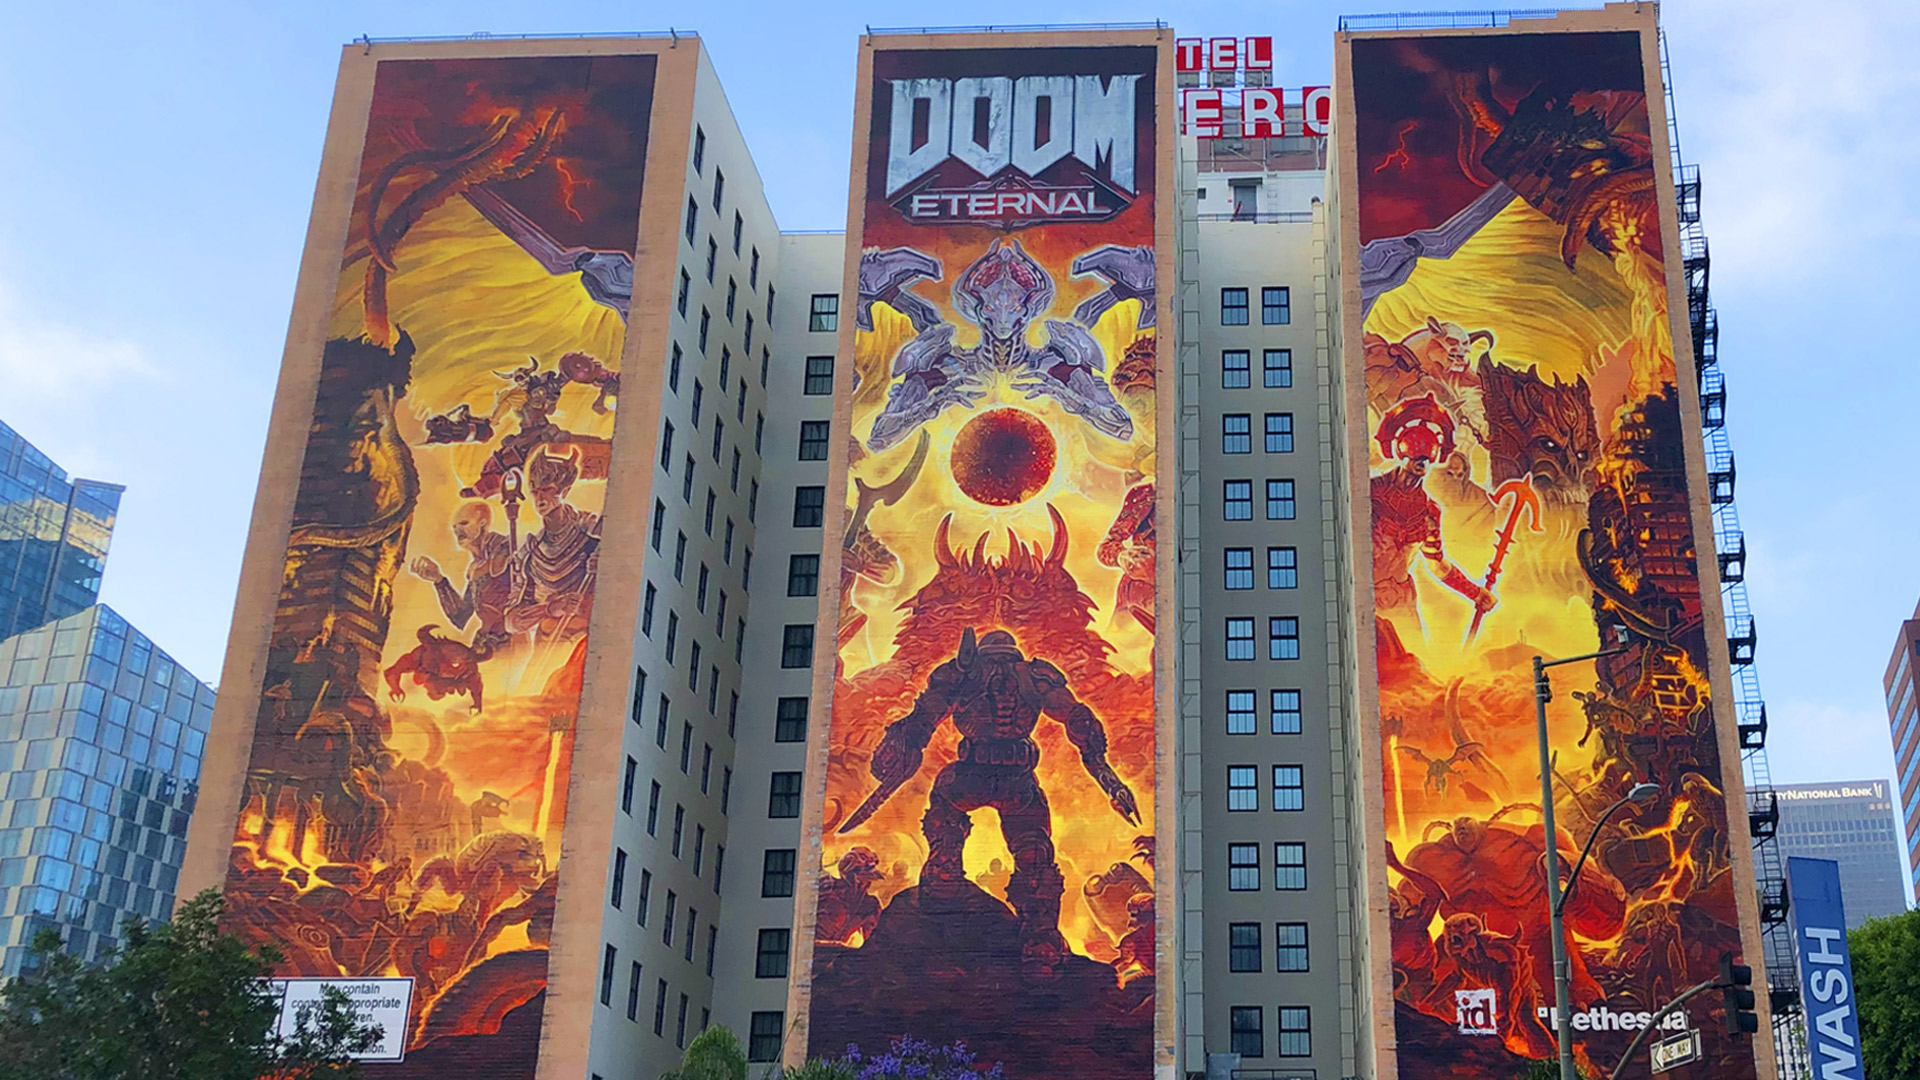 E3 2019: Pros and Cons from A First-Timer